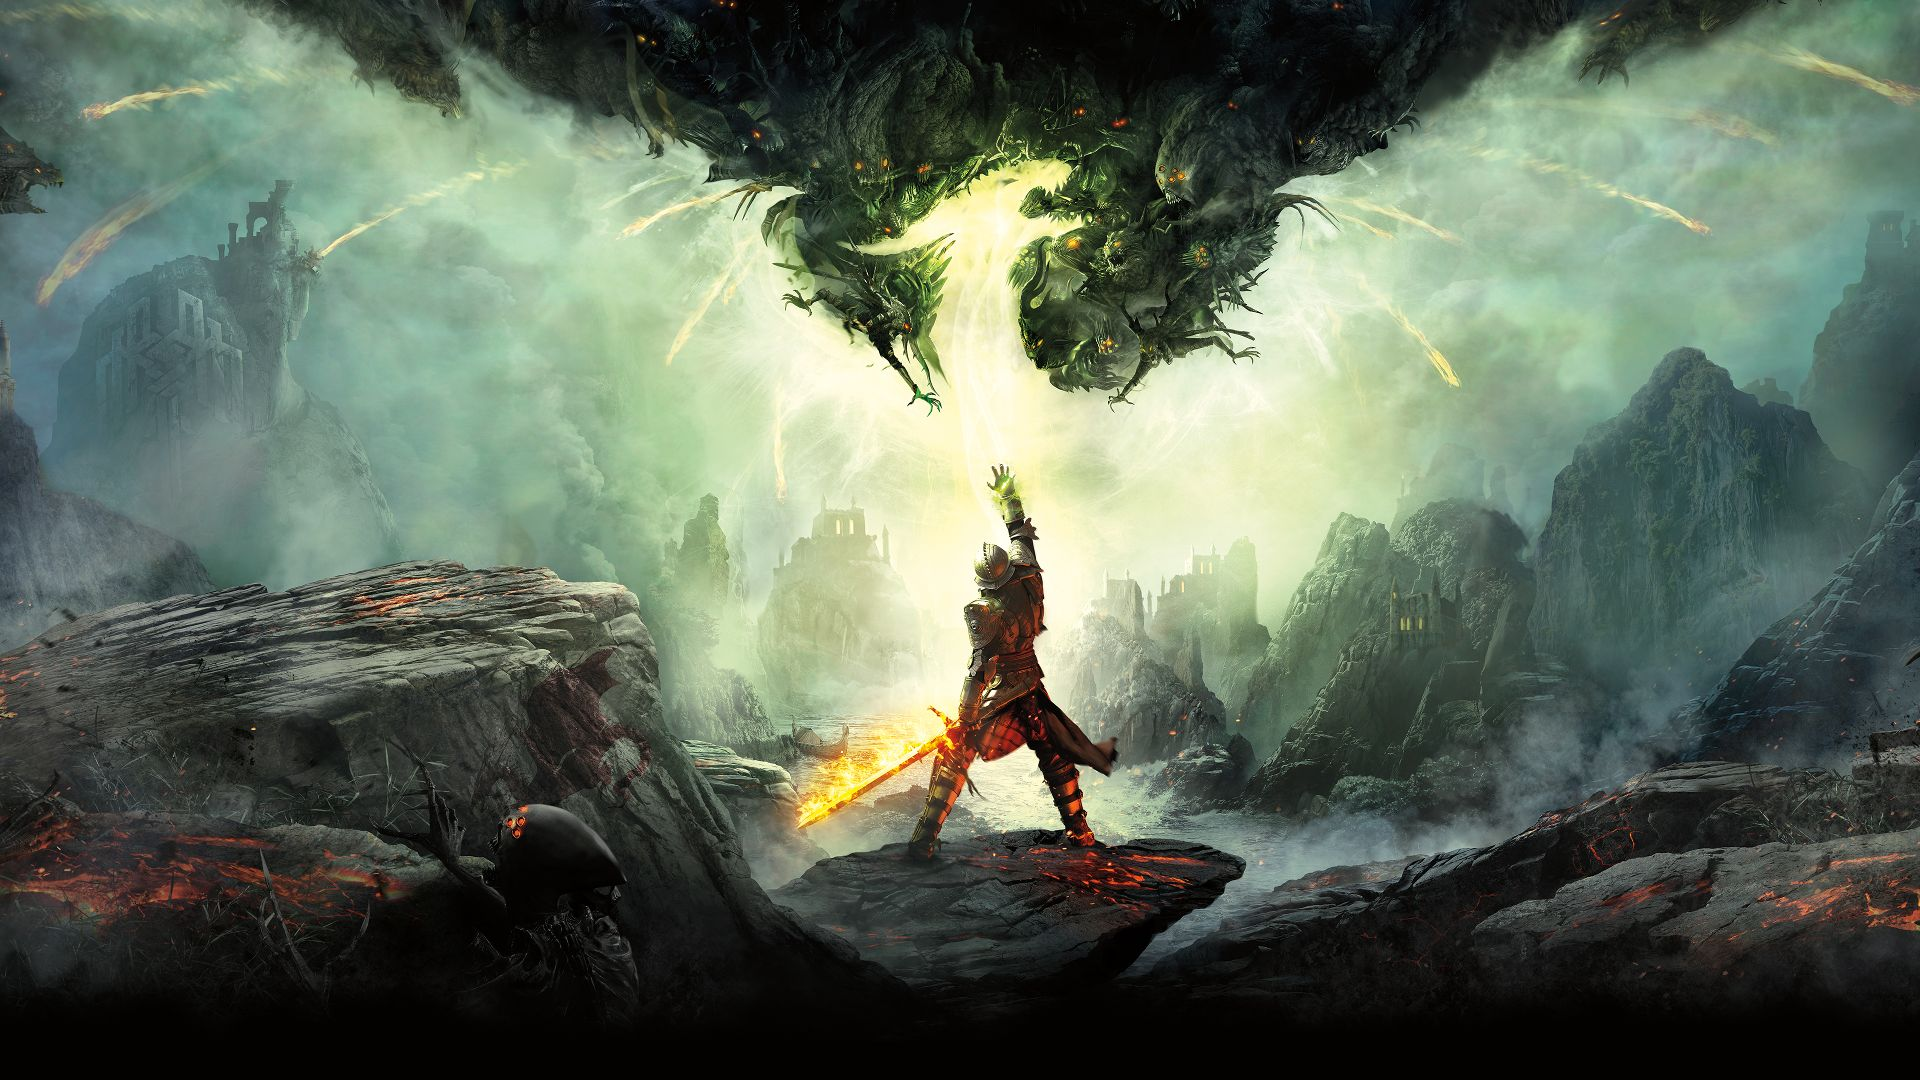 Best upcoming games 2019: most ykkhJshuUd2RVjB9A44s